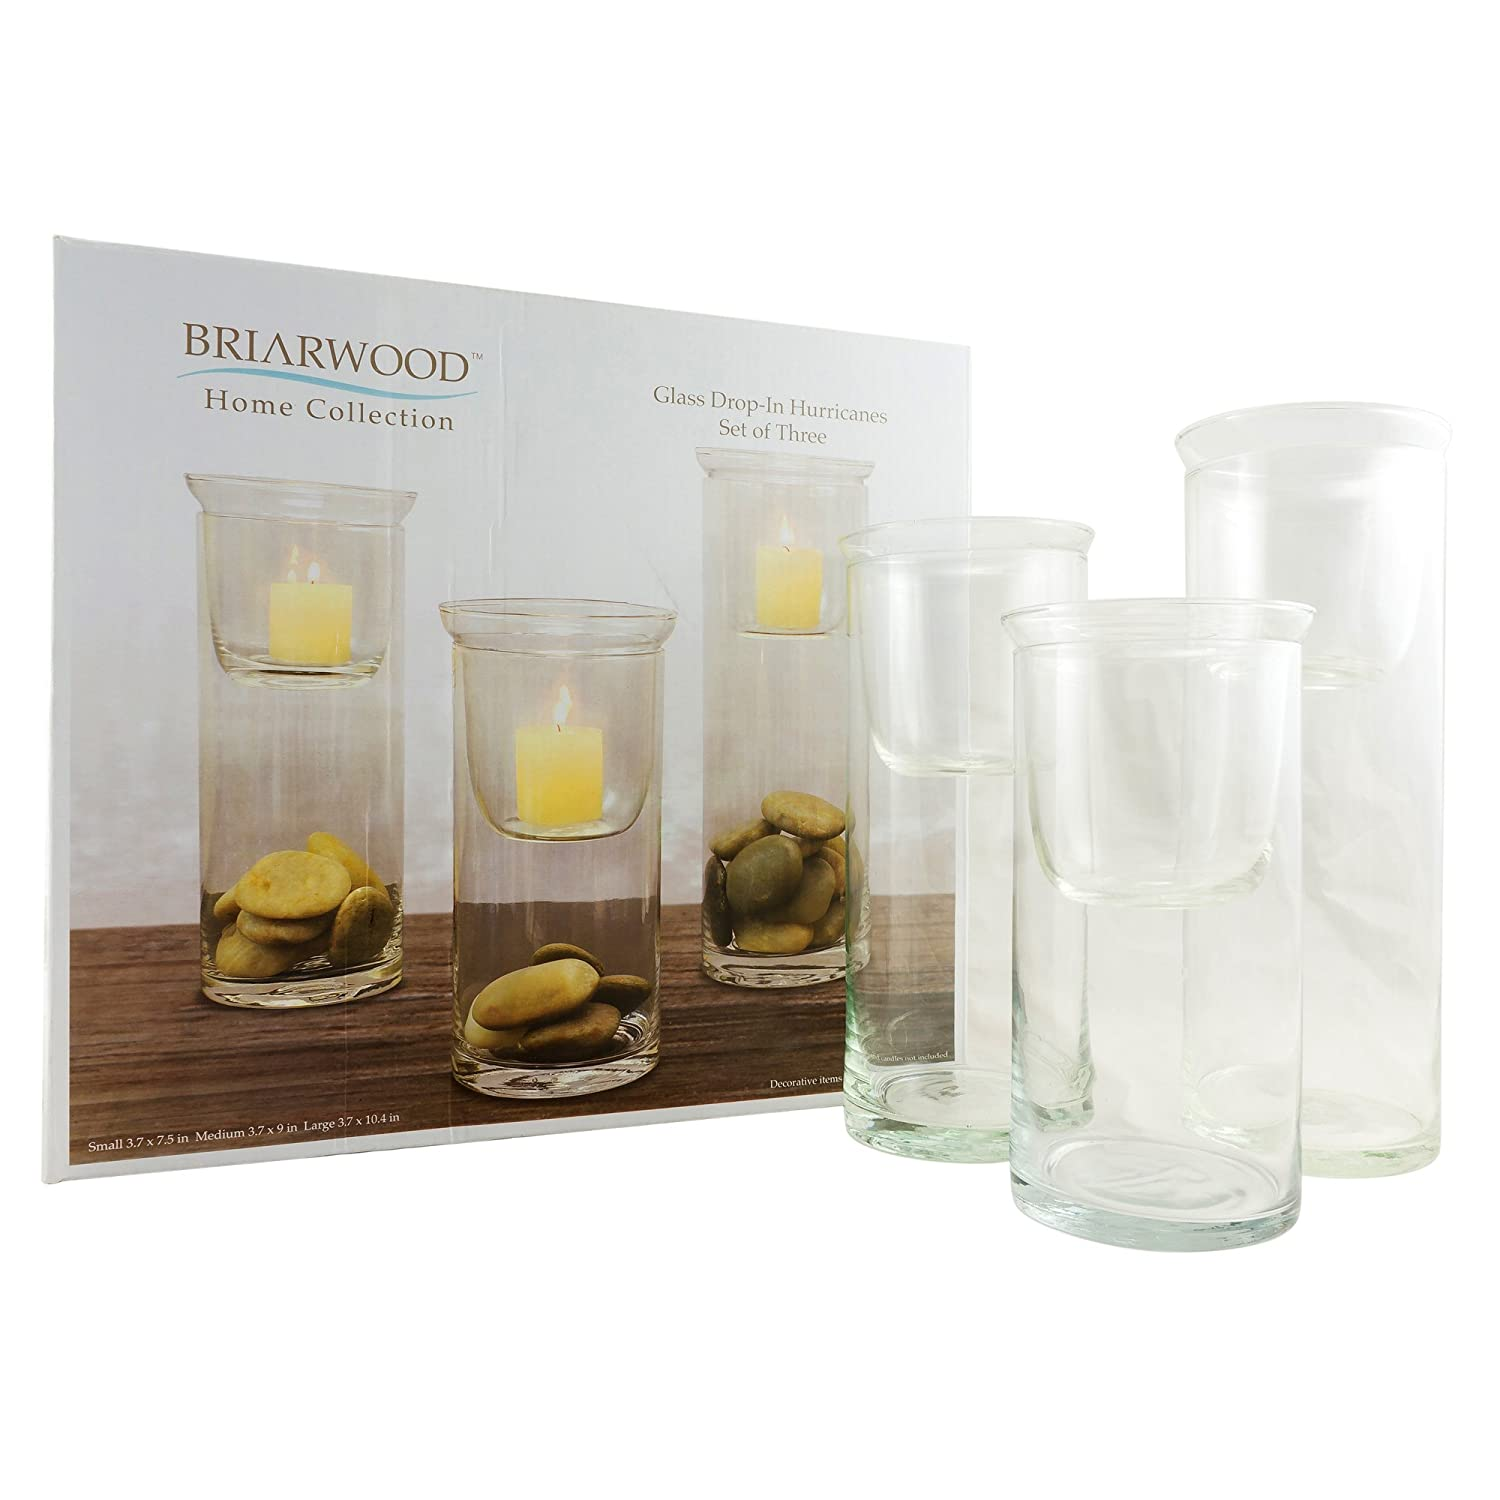 Stonebriar Cylinder Glass Hurricane Set with Removable Votive Candle Holder Inserts, Traditional Home Decor for Dining Room, Living Room, and Bedroom, Decorative Centerpiece CKK H-07-7007A06